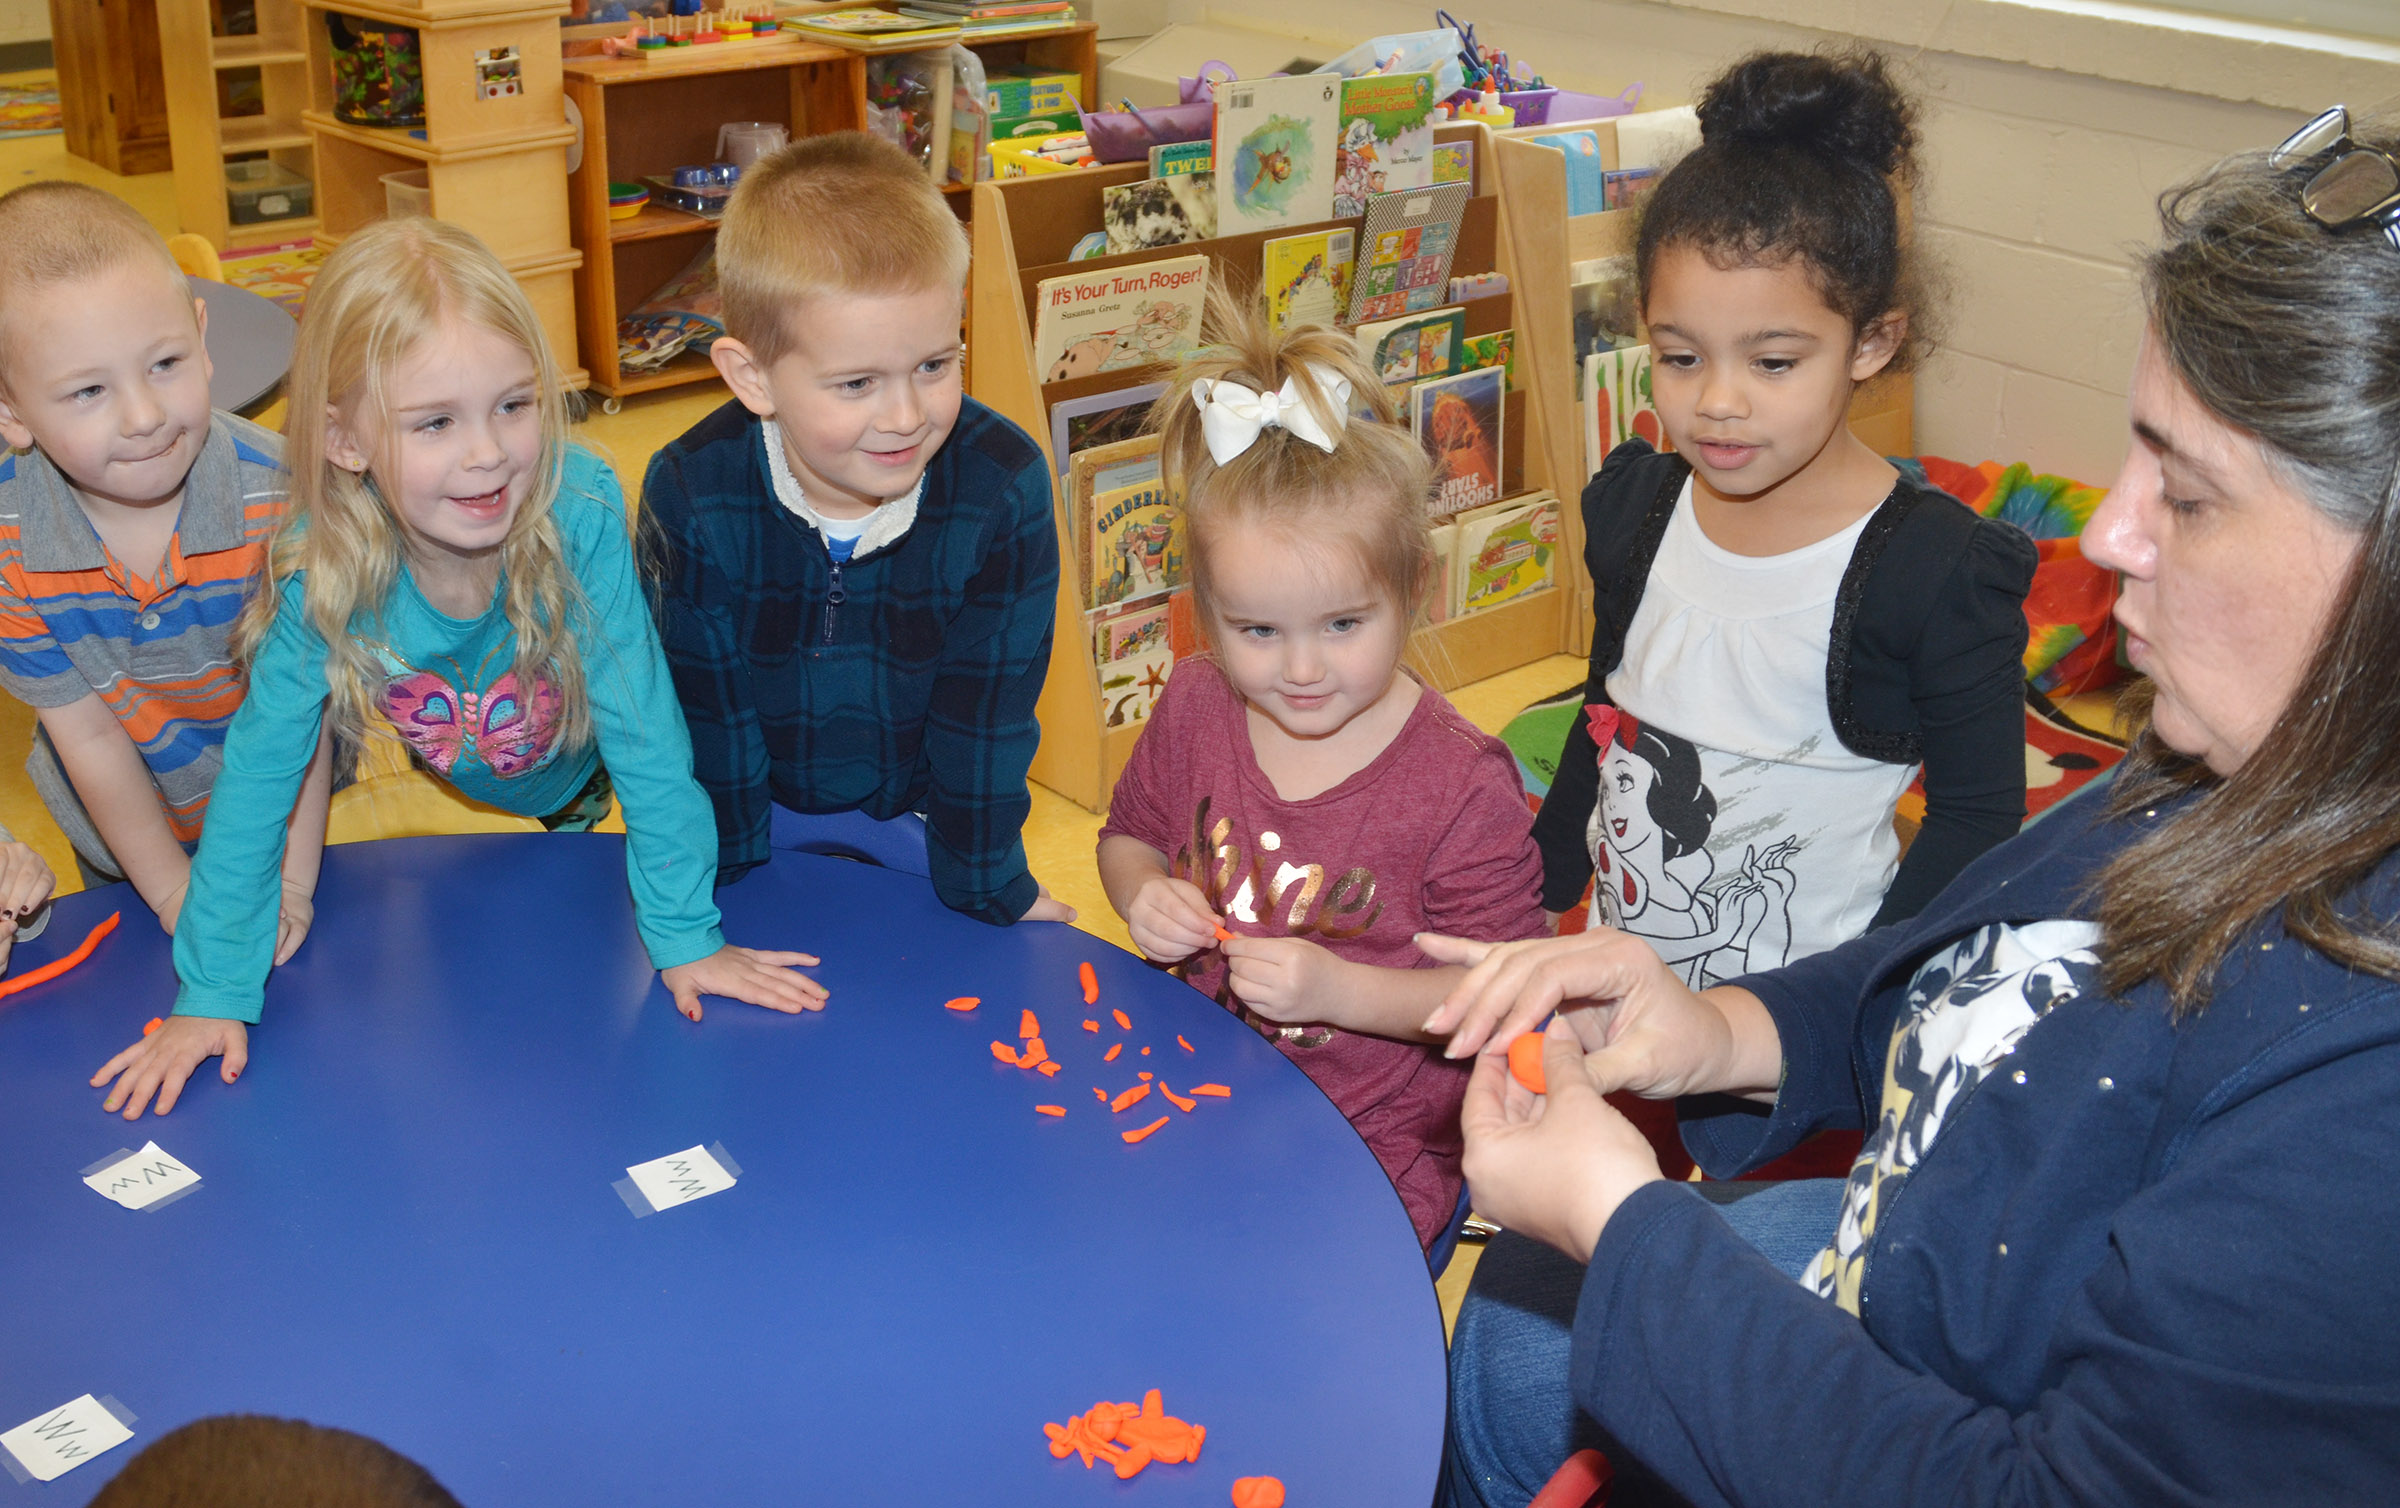 CES preschool teacher Sherry Cowherd makes a wishing well for her students out of Play-Doh. From left are Cameron Dean, Alinna Bray, Jacob Parrish, Trinity Dye and Rylee Karr.